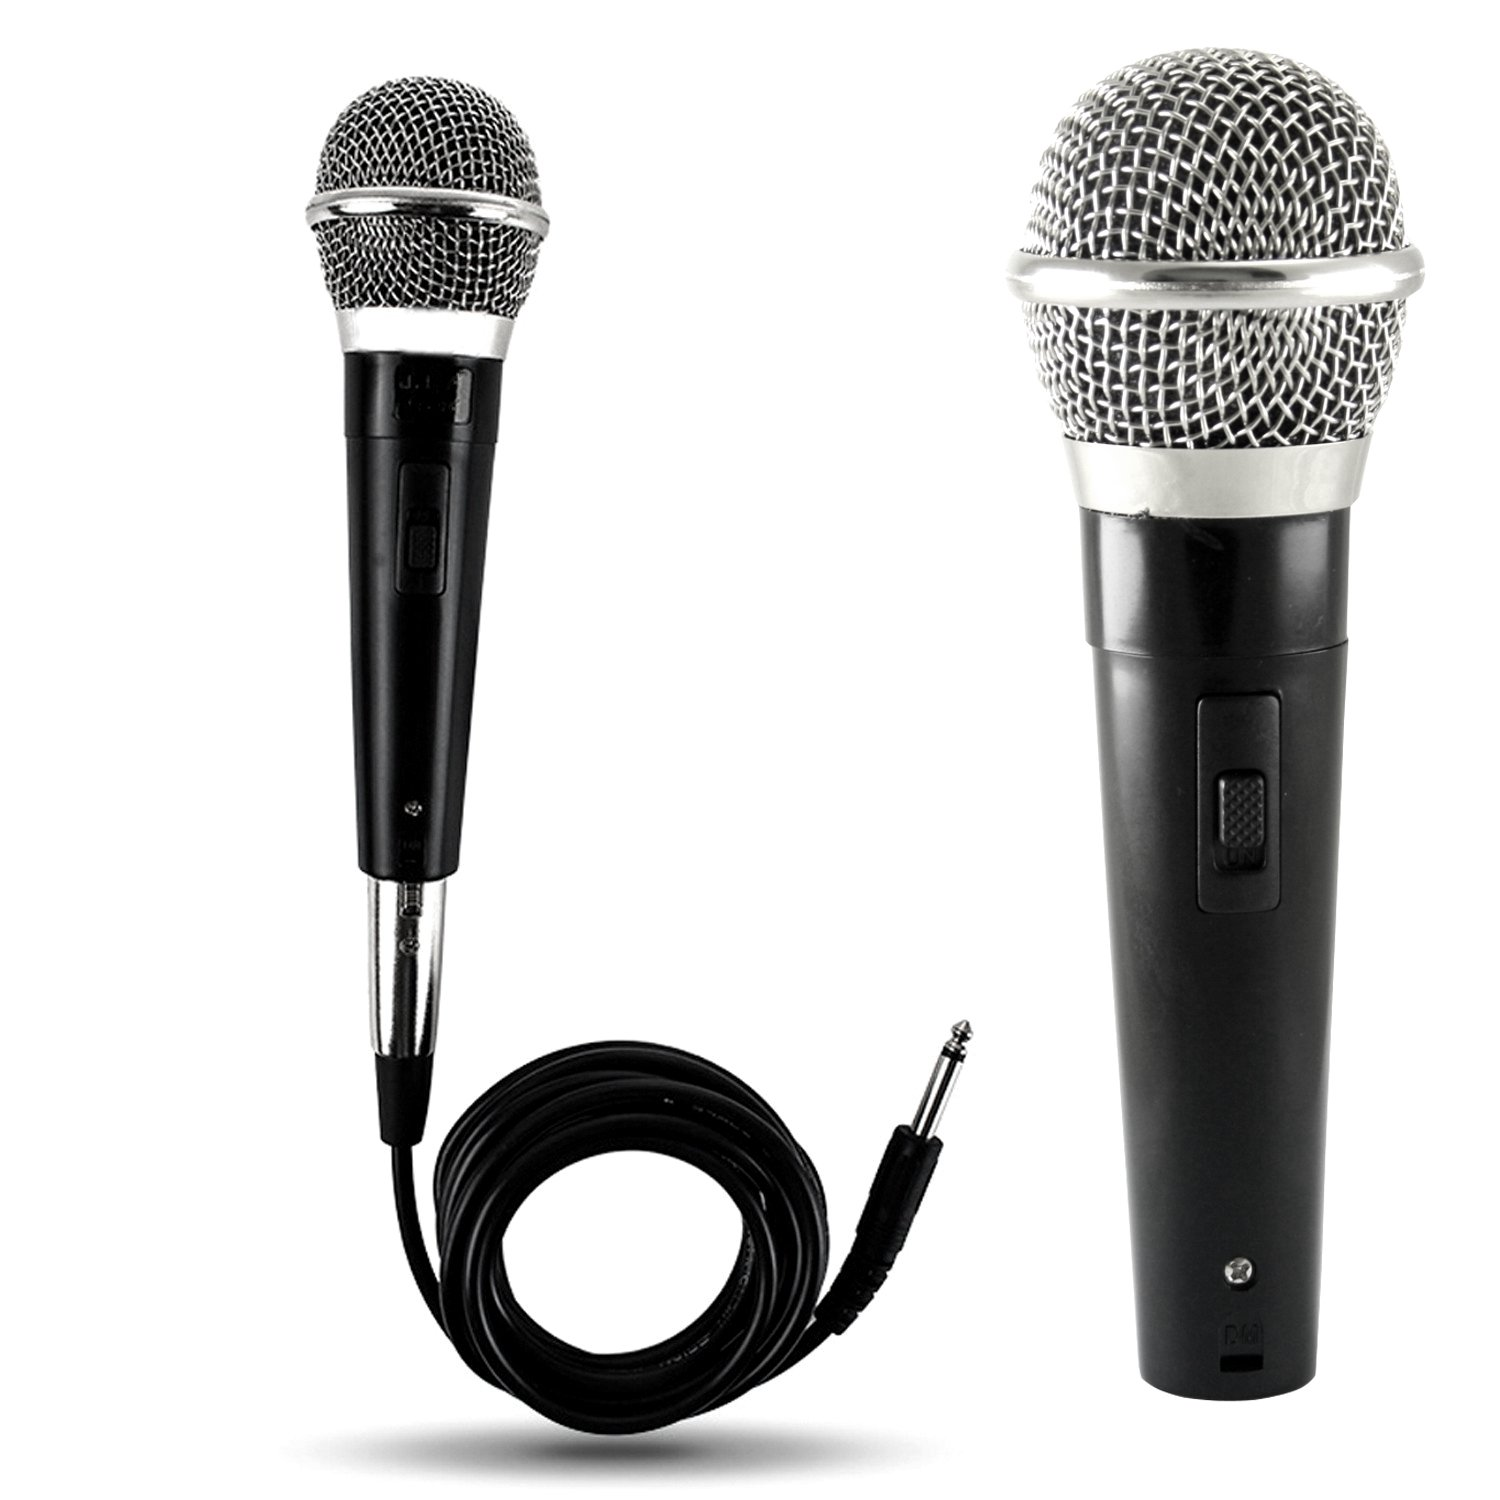 EXMAX® YS-226 Moving Coil Handheld Wired Dynamic Microphone for Stage Singing, Home, ktv Dedicated, Meeting Dedicated, Computer 4330235872